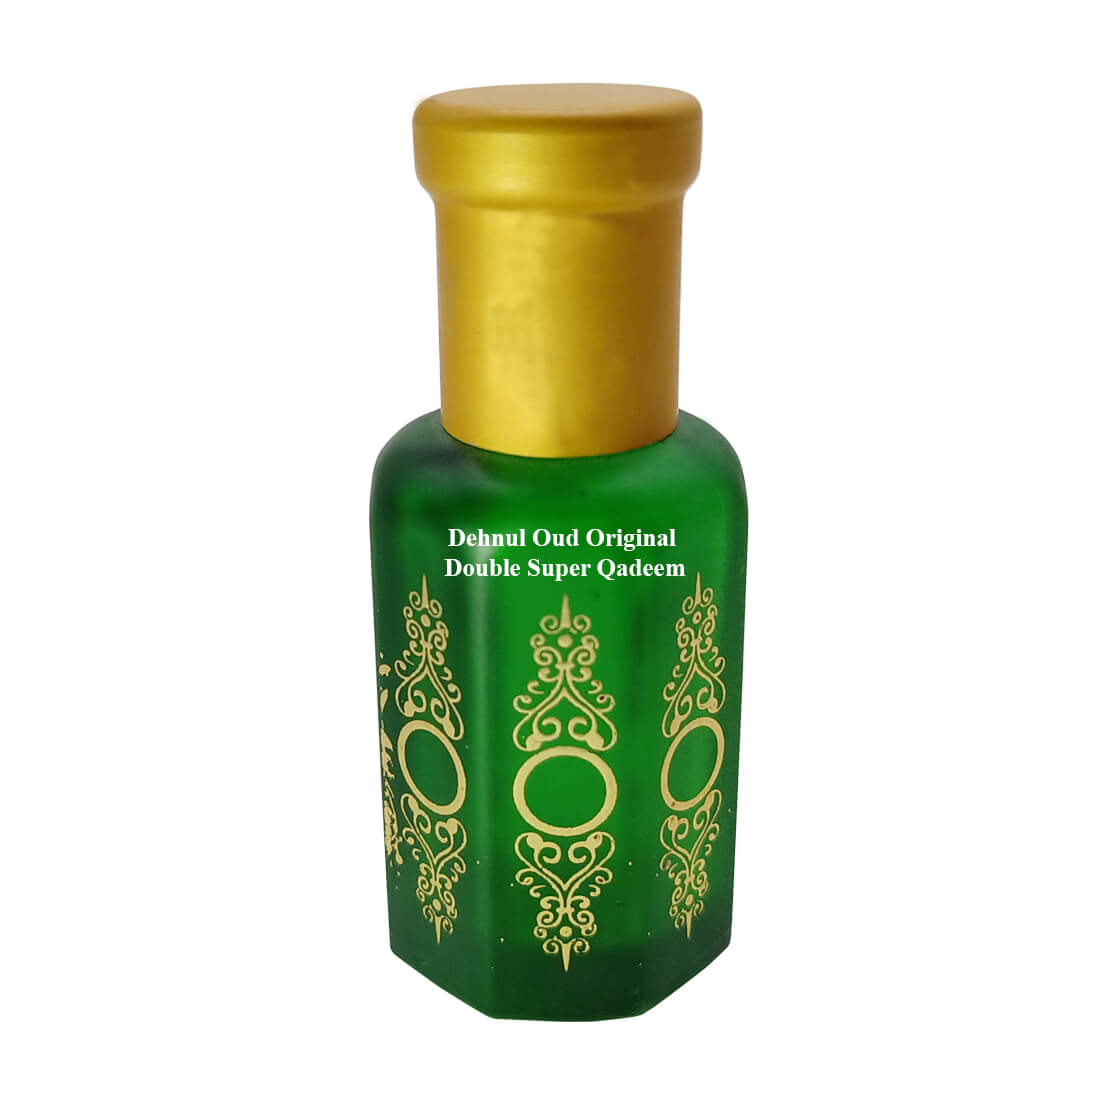 Dehnul Oud Original Double Super Qadeem Attar By Al Saud - 12ml